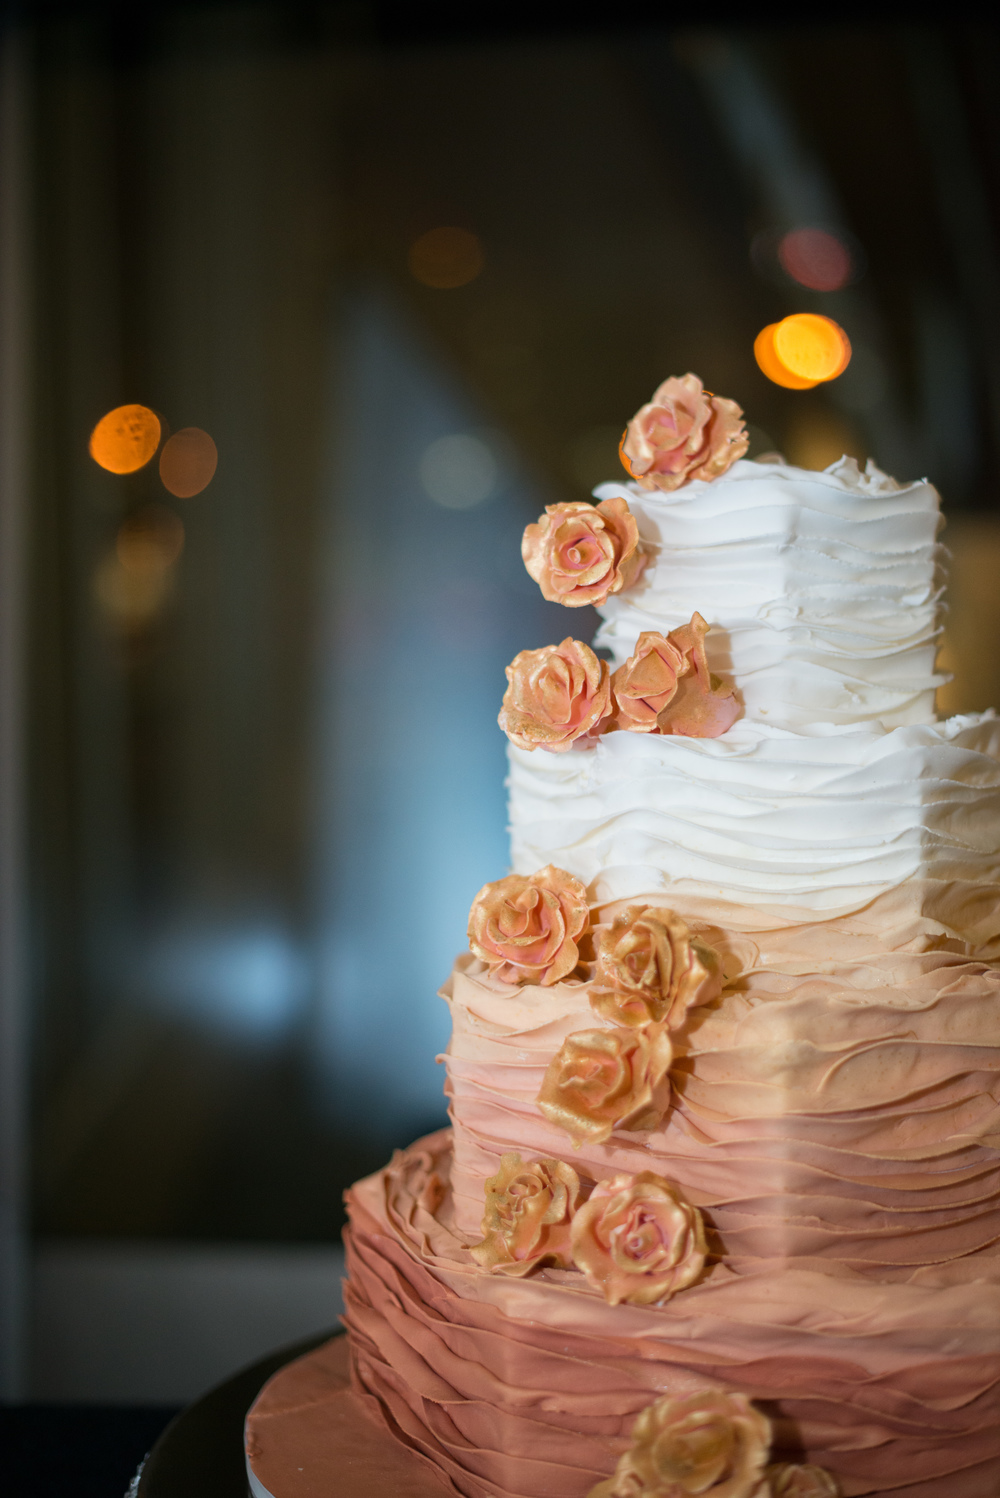 Acowsay_Cinema_MN_Wedding_Cake_2.jpg